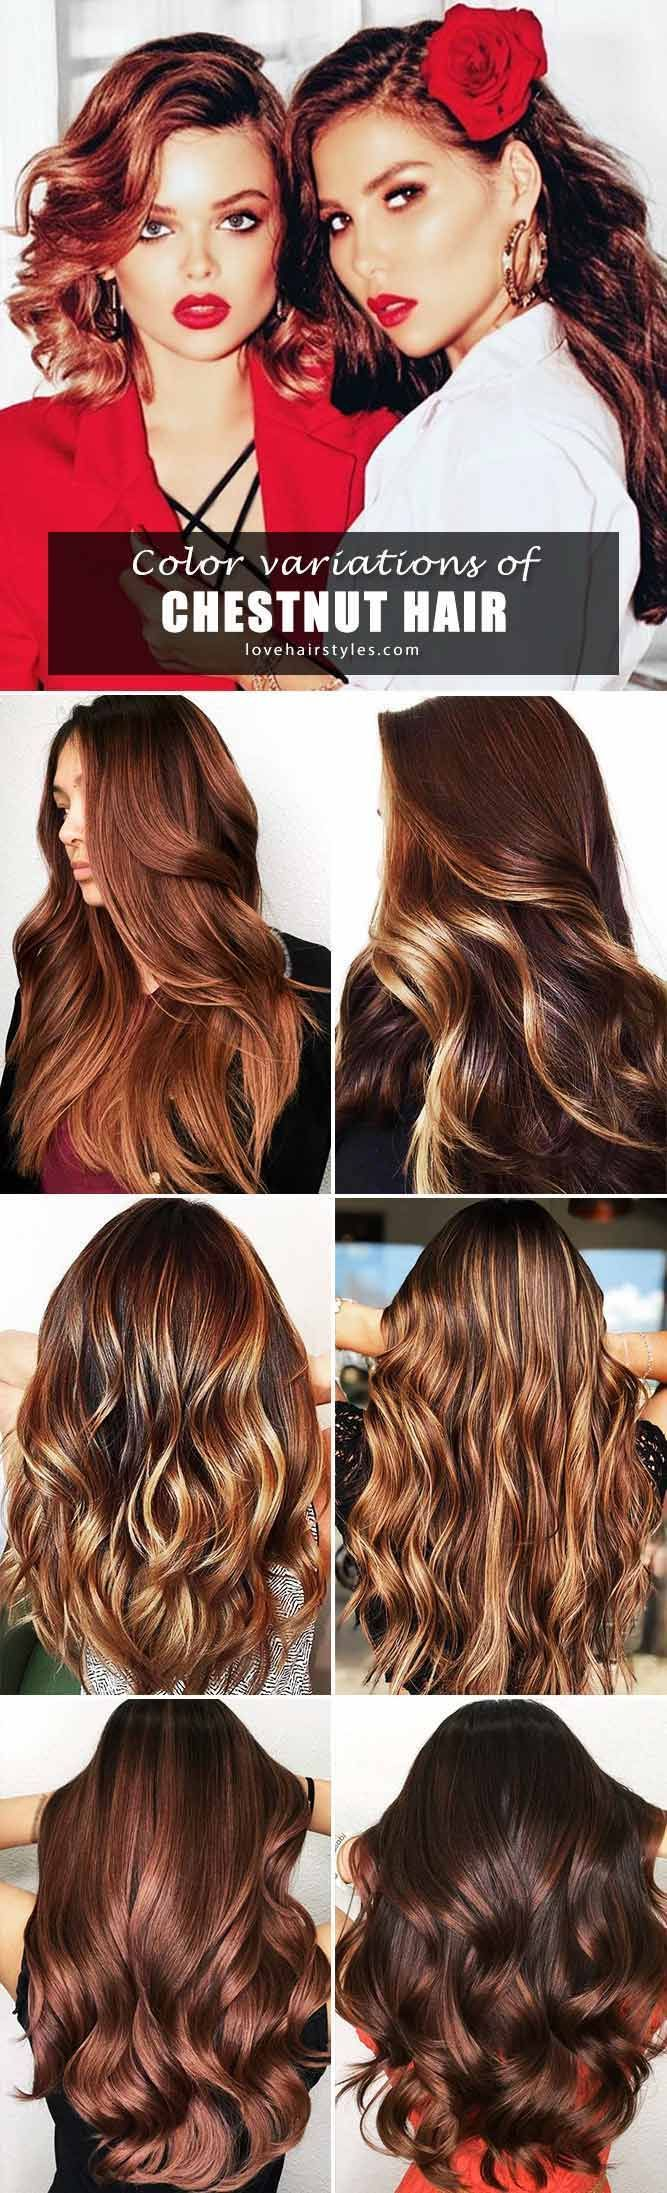 Hair Color 2017/ 2018 - ️ Want to find some chestnut hair ...